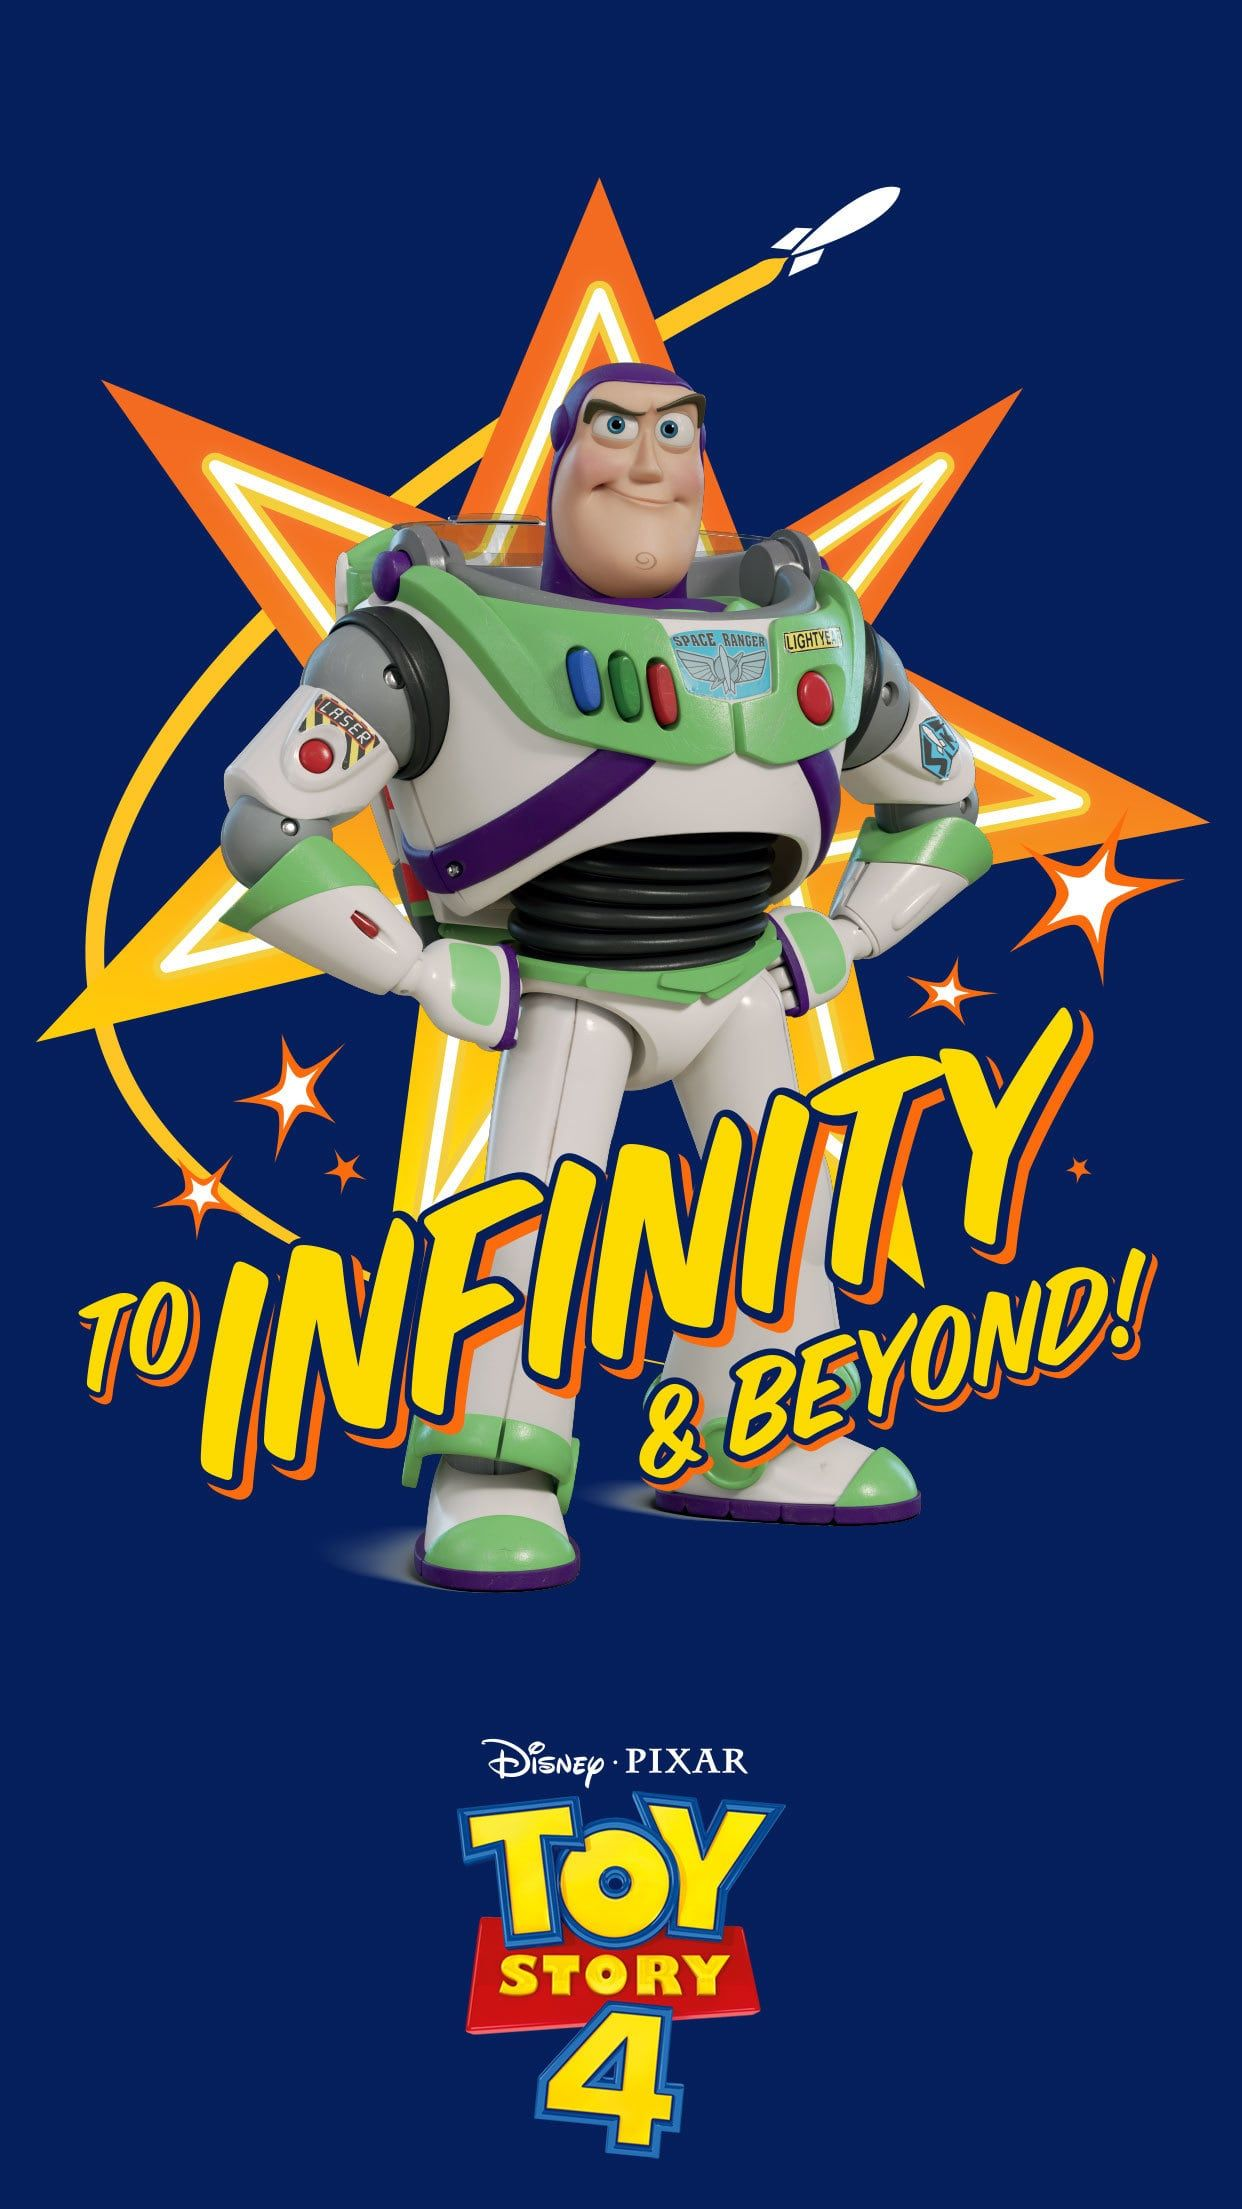 Go To Infinity And Beyond With These Disney Pixar Toy Story 4 Mobile Wallpapers Disney Singapo Peliculas De Disney Pixar Fotos De Toy Story Dibujos Toy Story